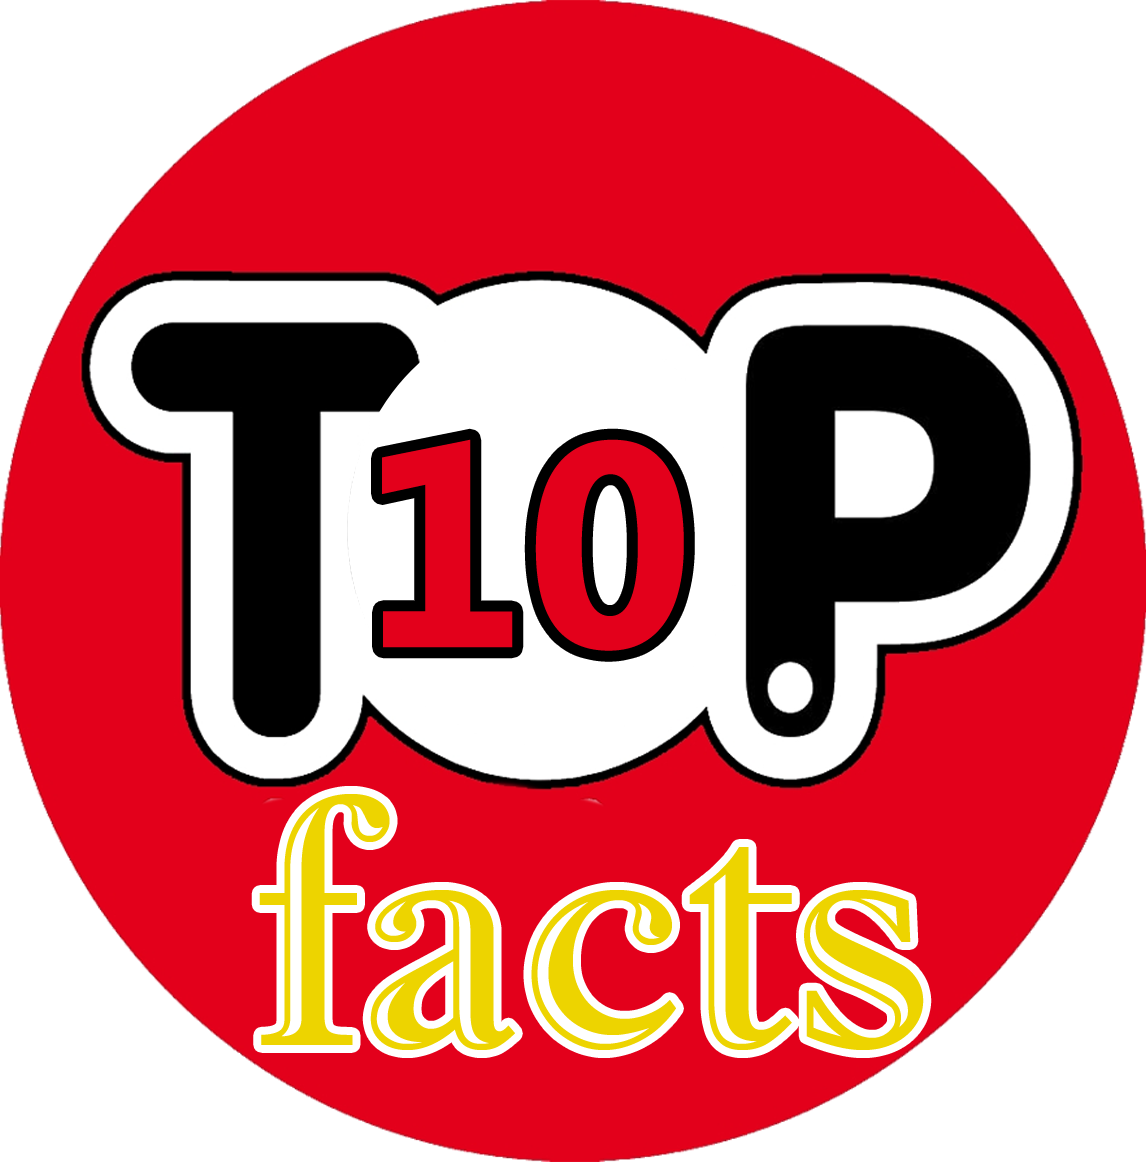 Top-10Facts